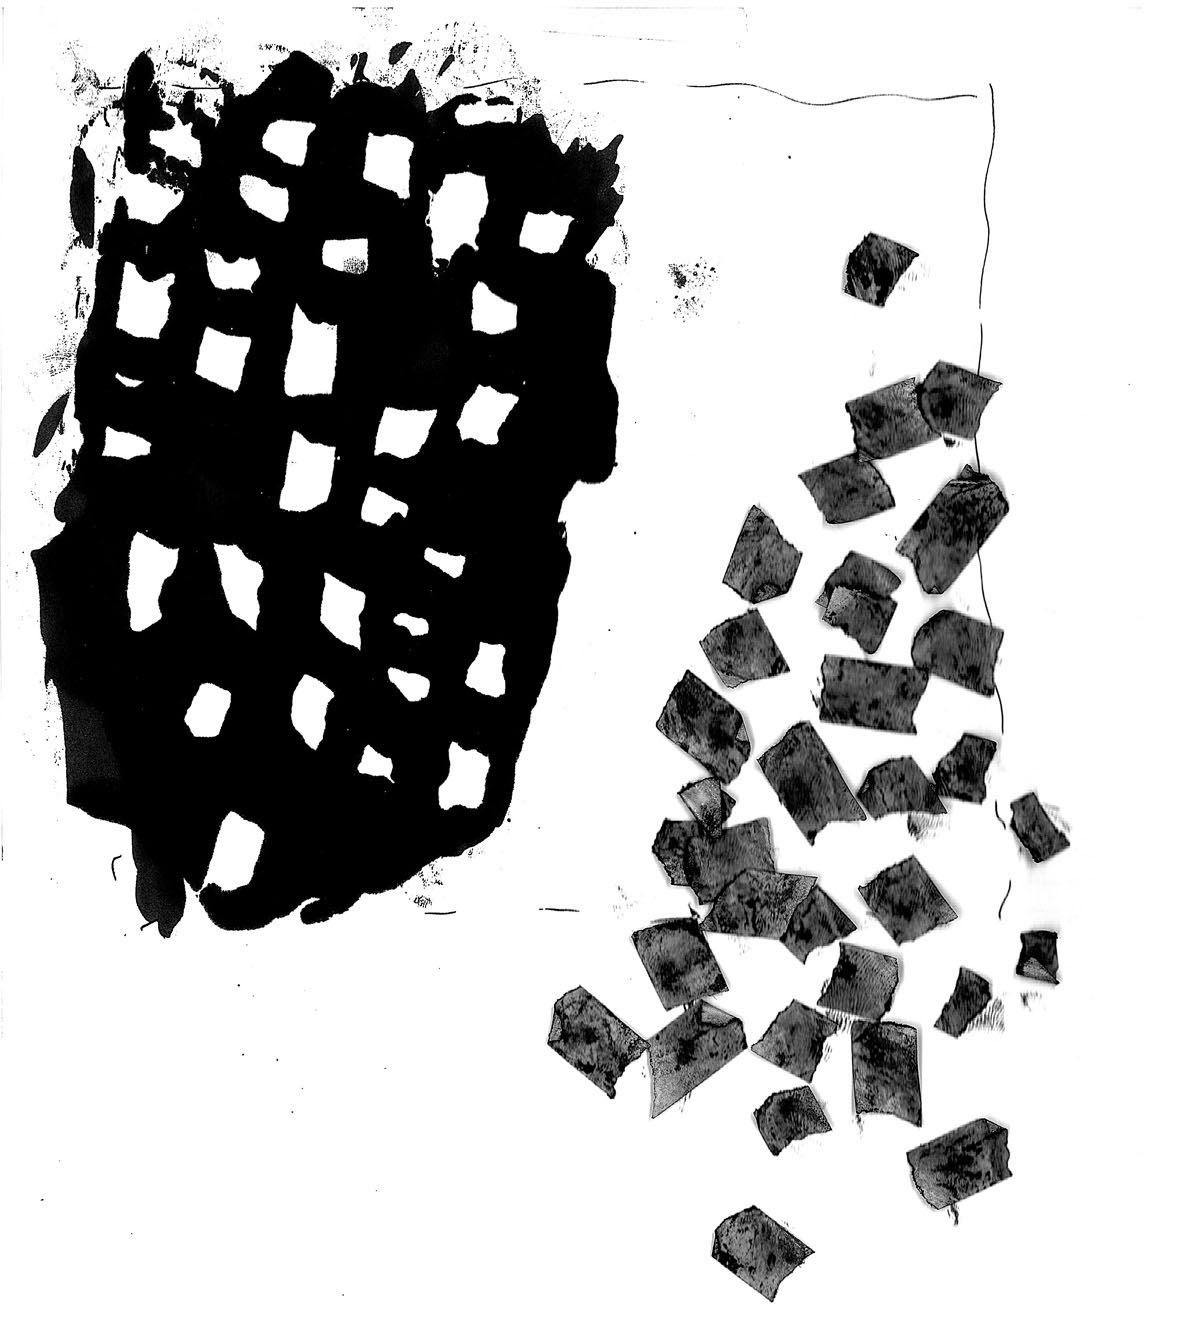 Black and white abstract idea sketch for a design inspired by nature.